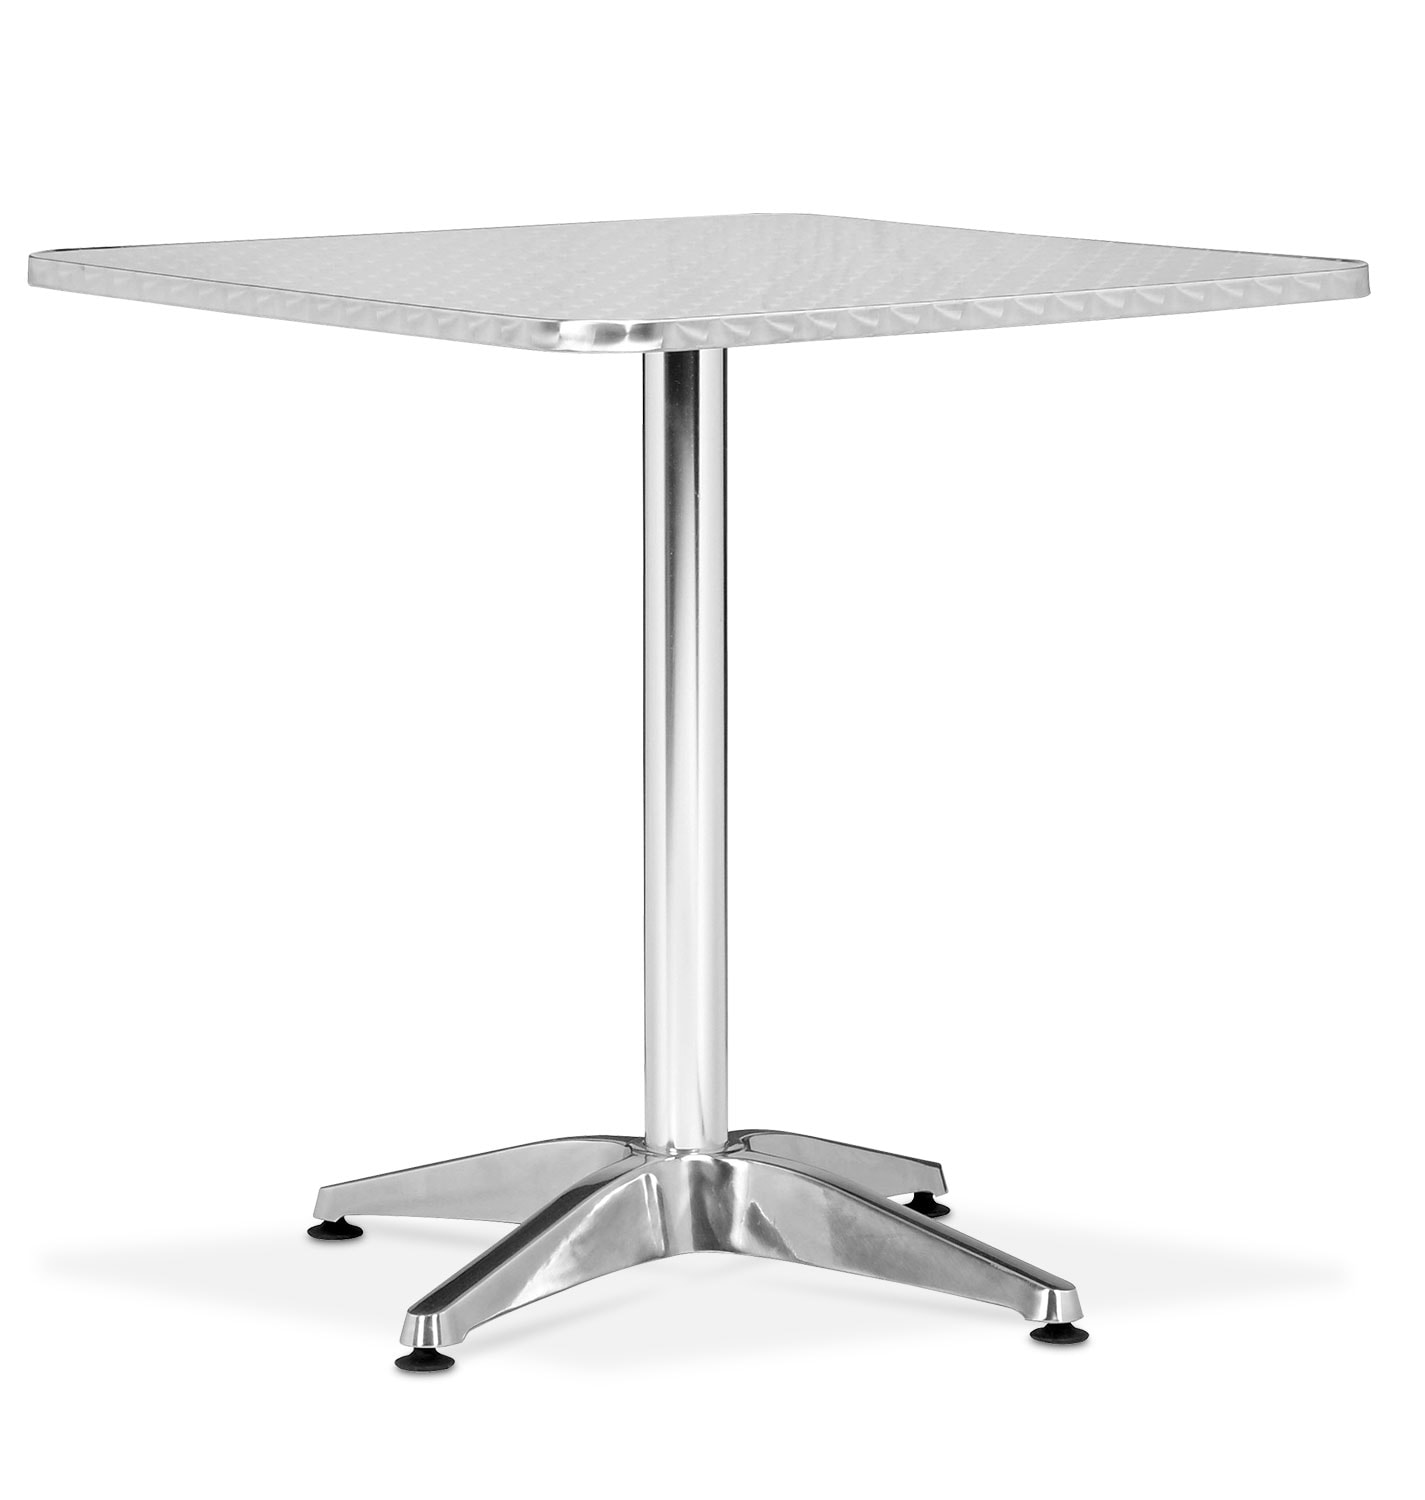 Outdoor Furniture - Cleo Outdoor Square Table - Gray